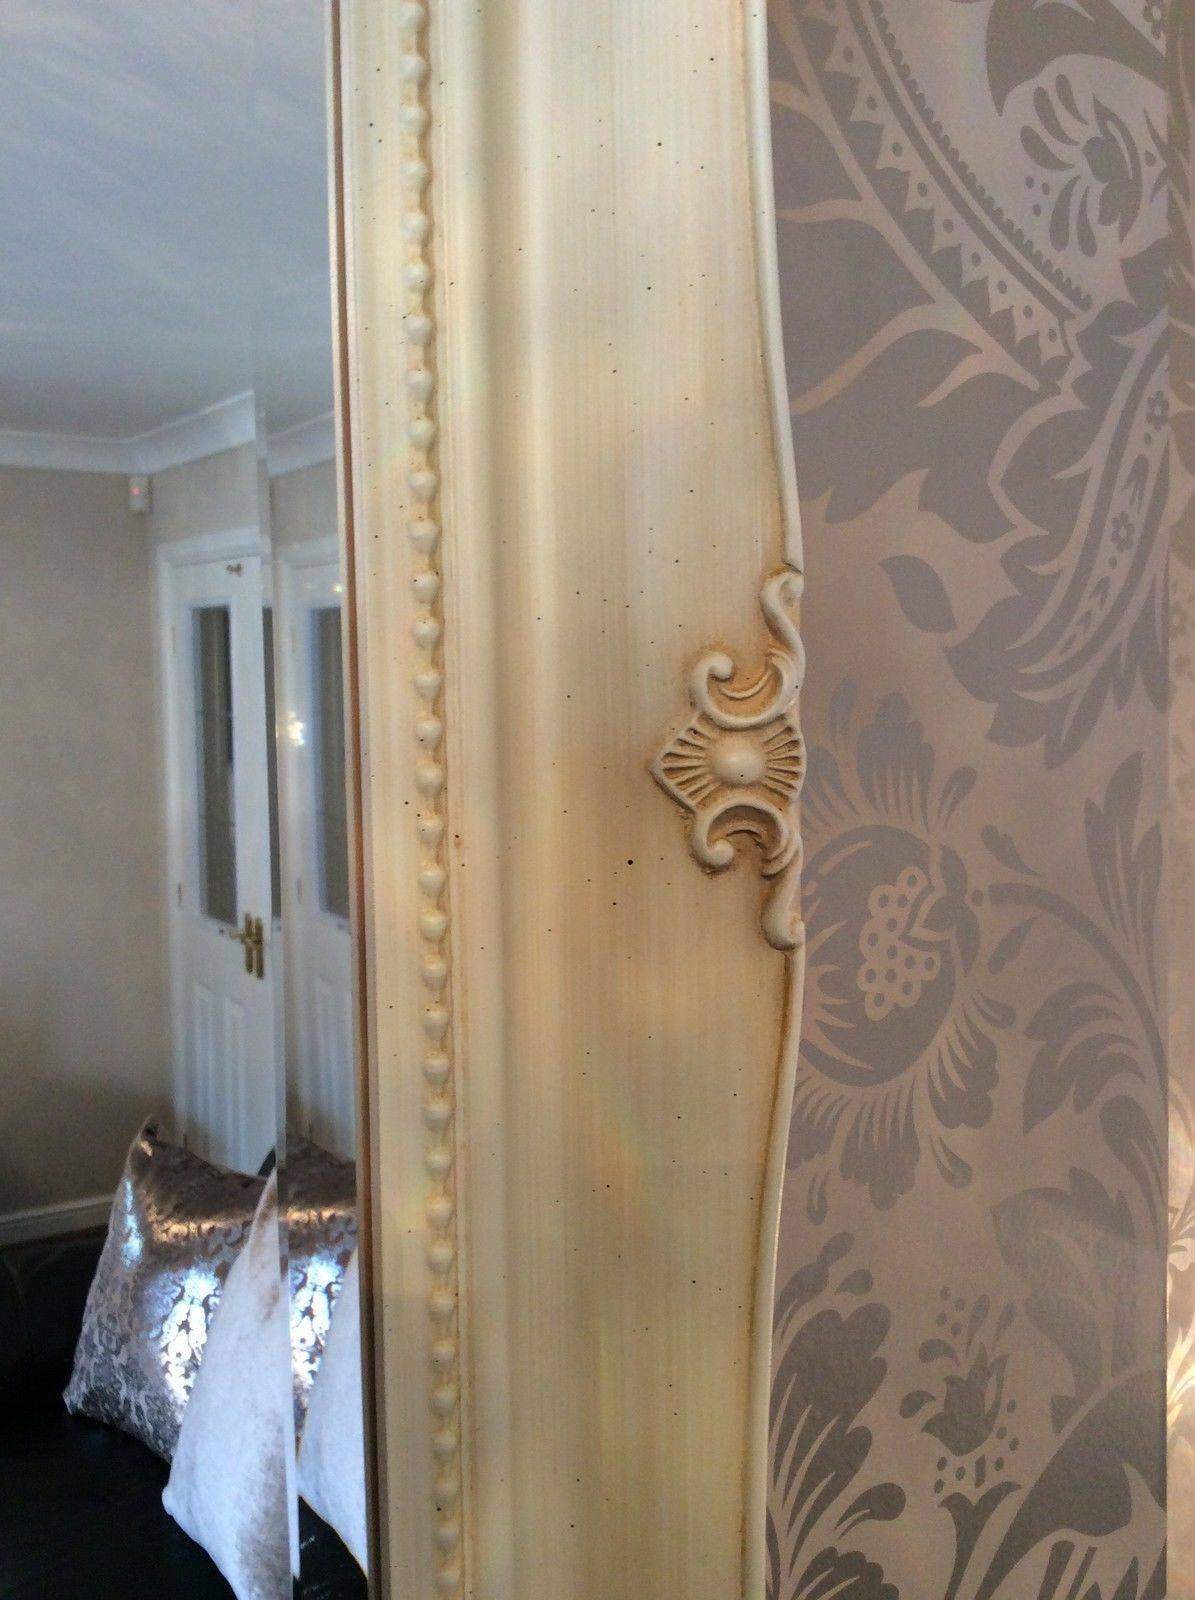 Ornate Cream Ivory Shabby Chic French Inspired Mirror - Bargain inside Ivory Ornate Mirrors (Image 16 of 25)